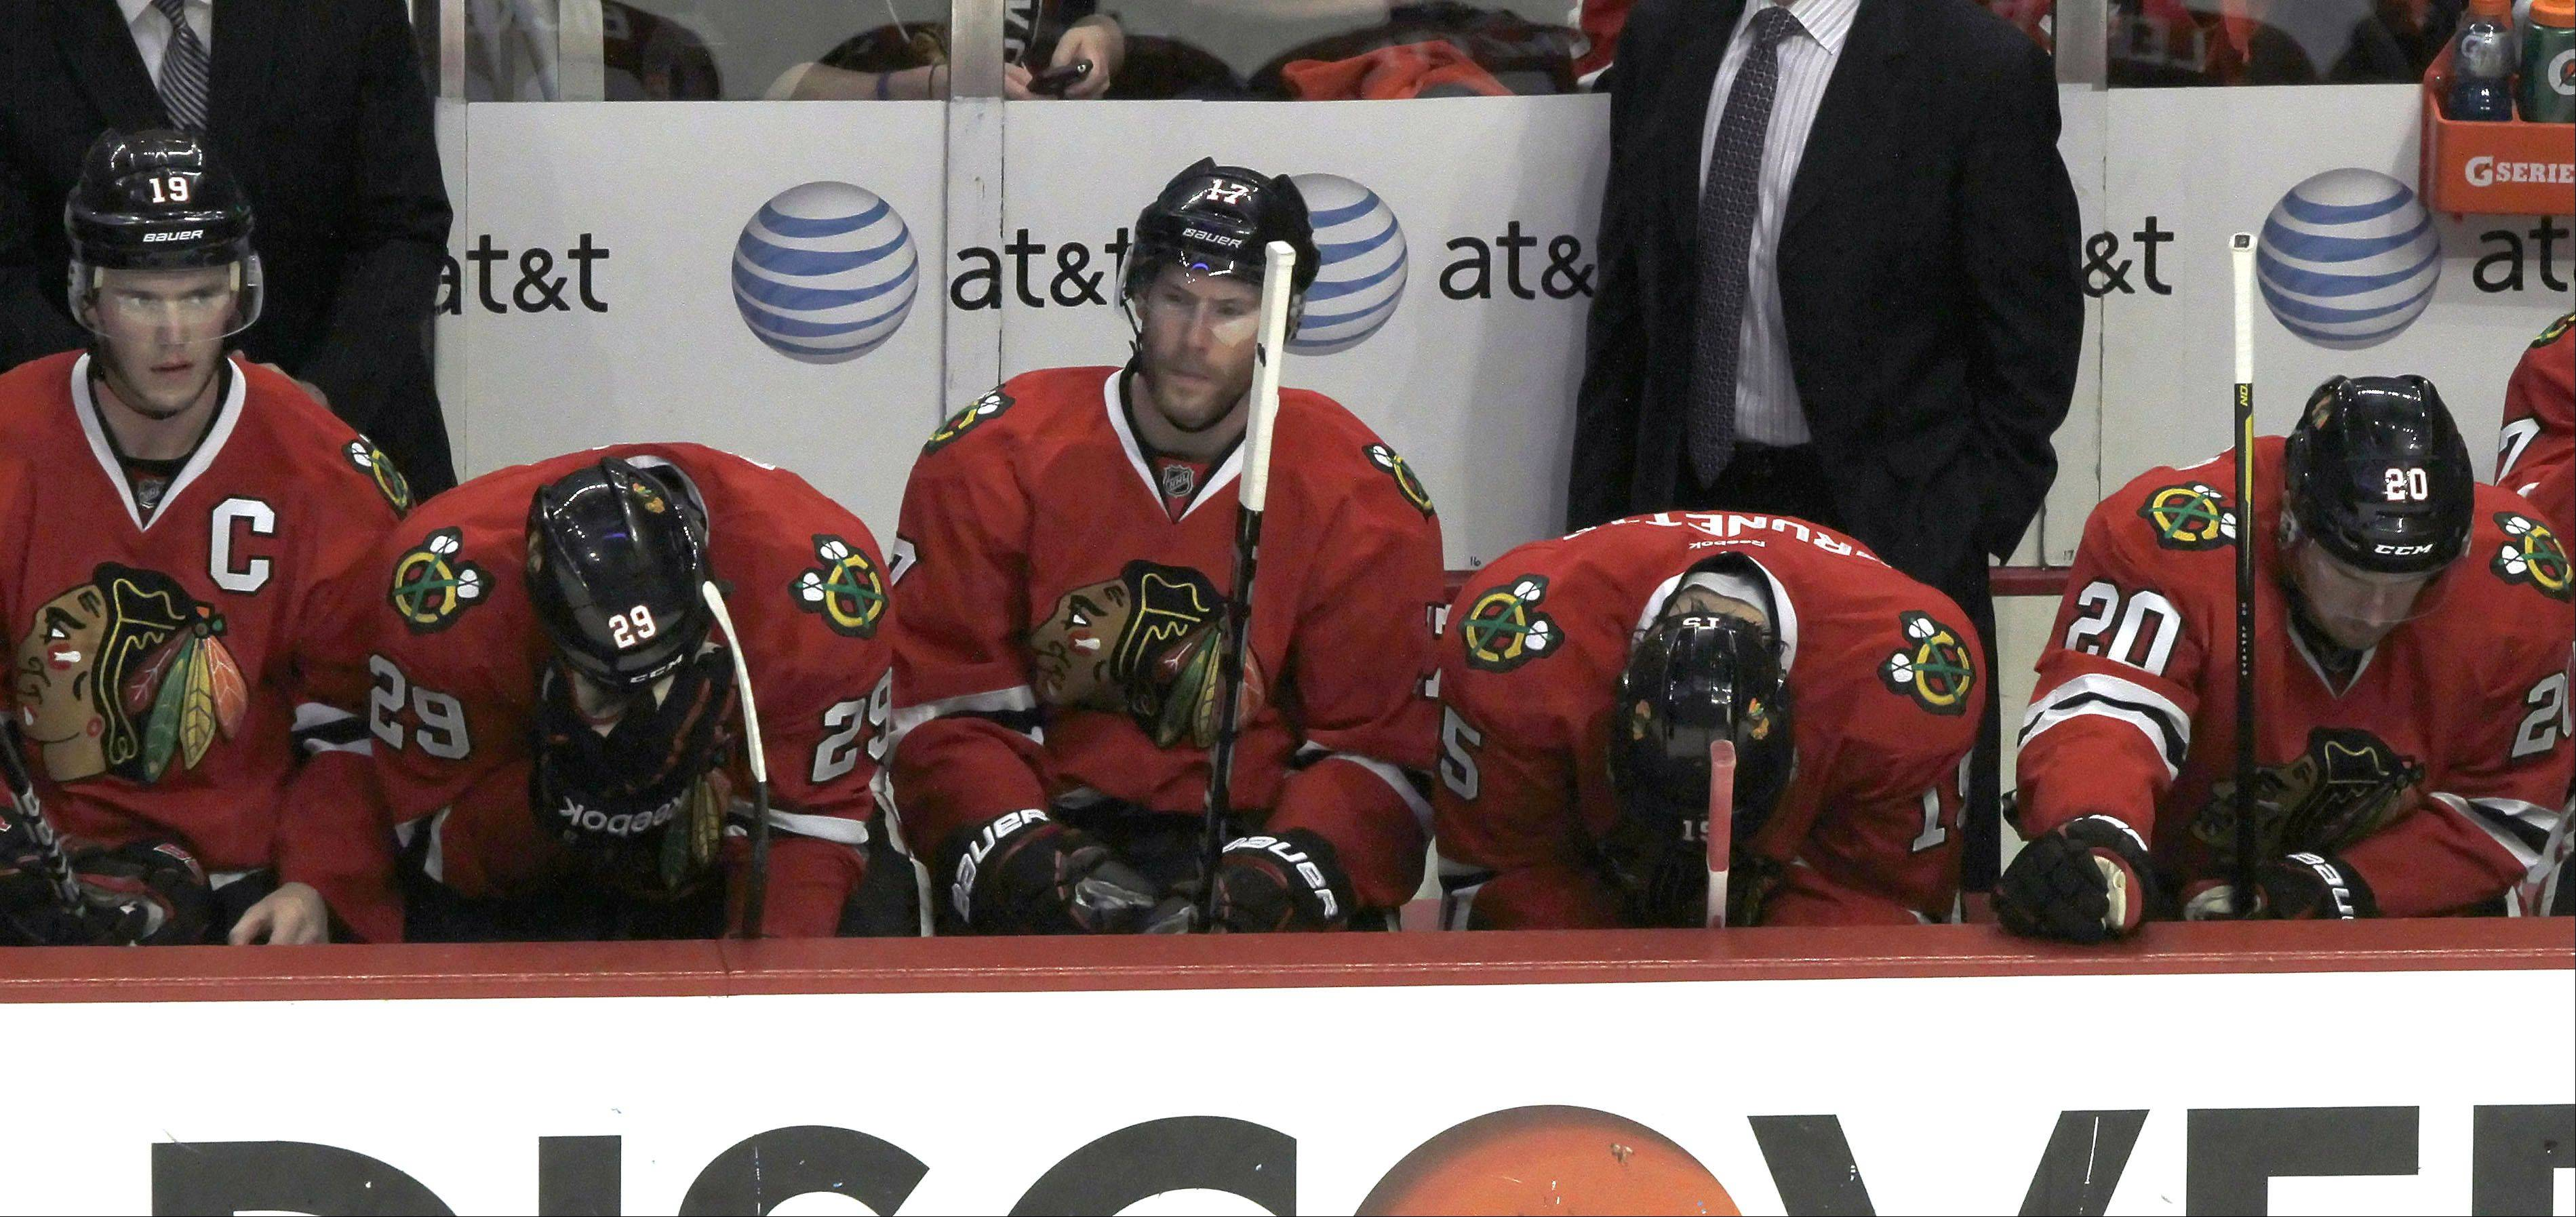 Blackhawks hang their heads on the bench as the game ends.